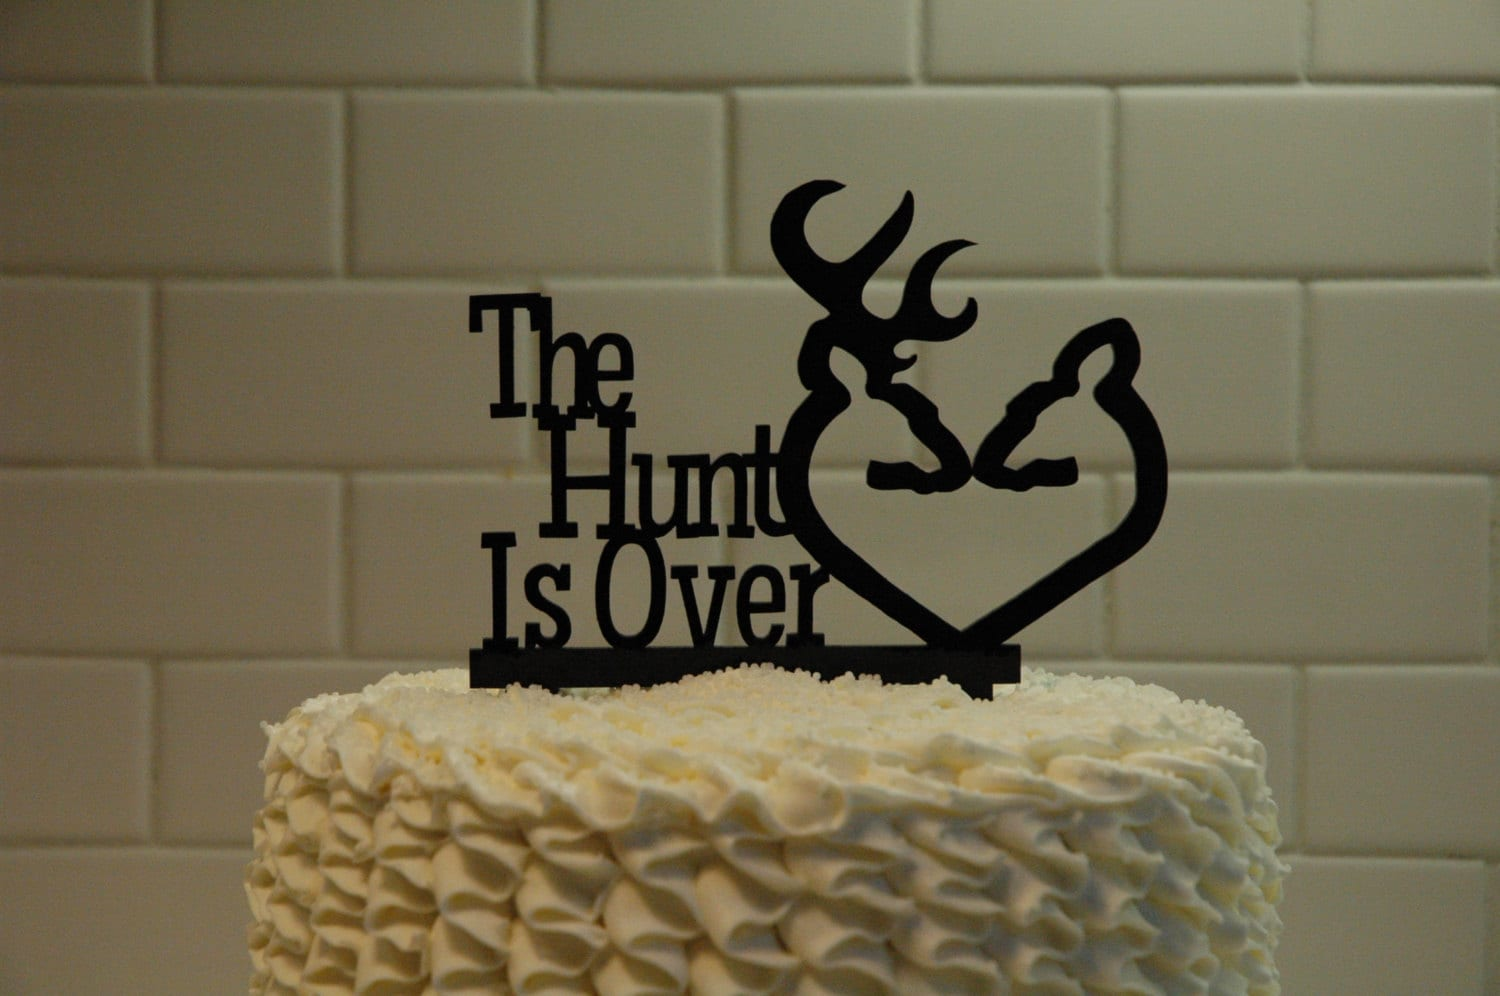 Deer Wedding Cake Topper The Hunt is Over grooms cake         zoom